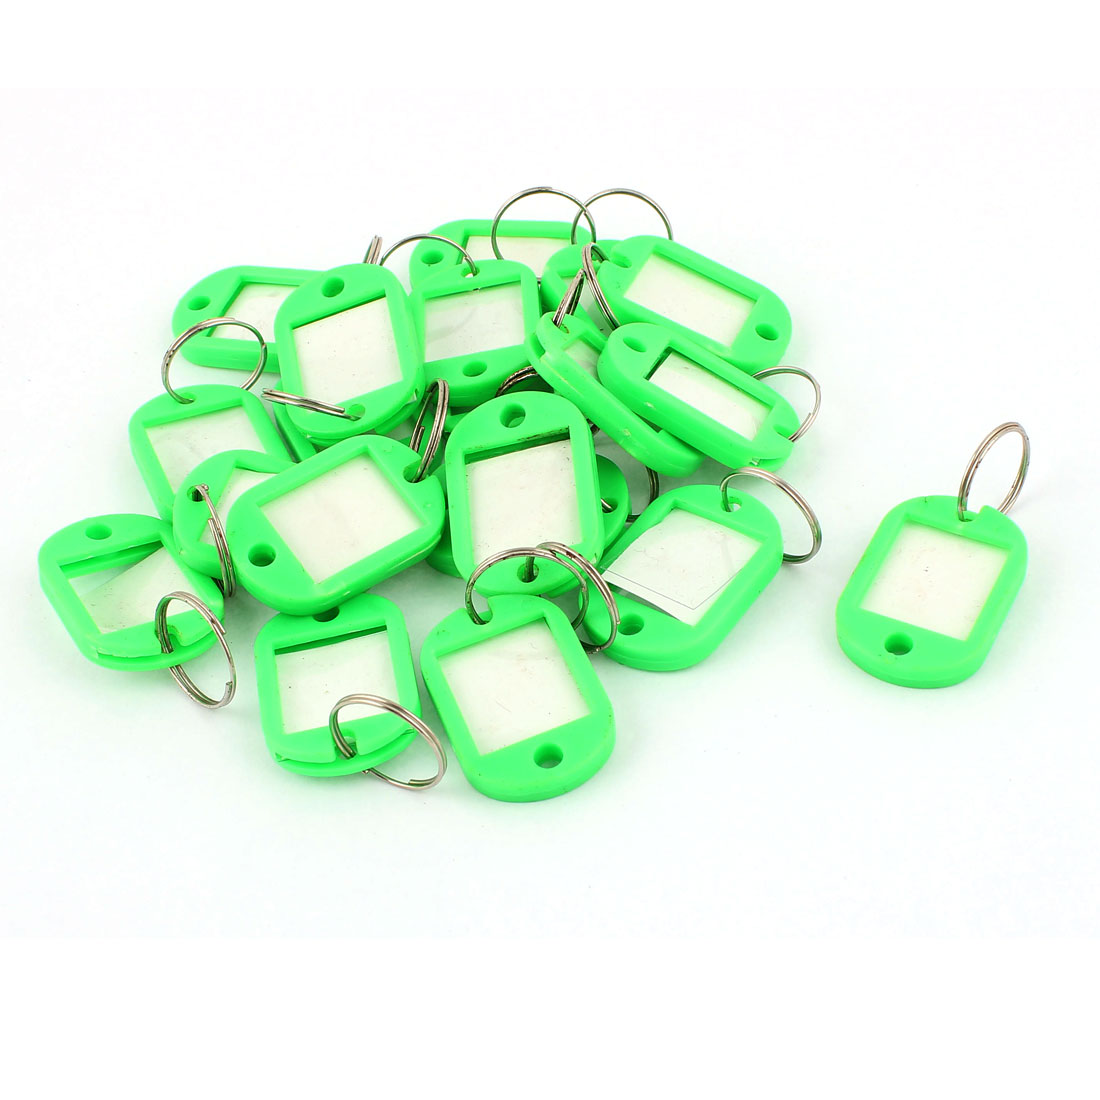 20pcs Green Plastic Key Fobs ID Label Luggage Tags Name Card w Keyring Split Ring